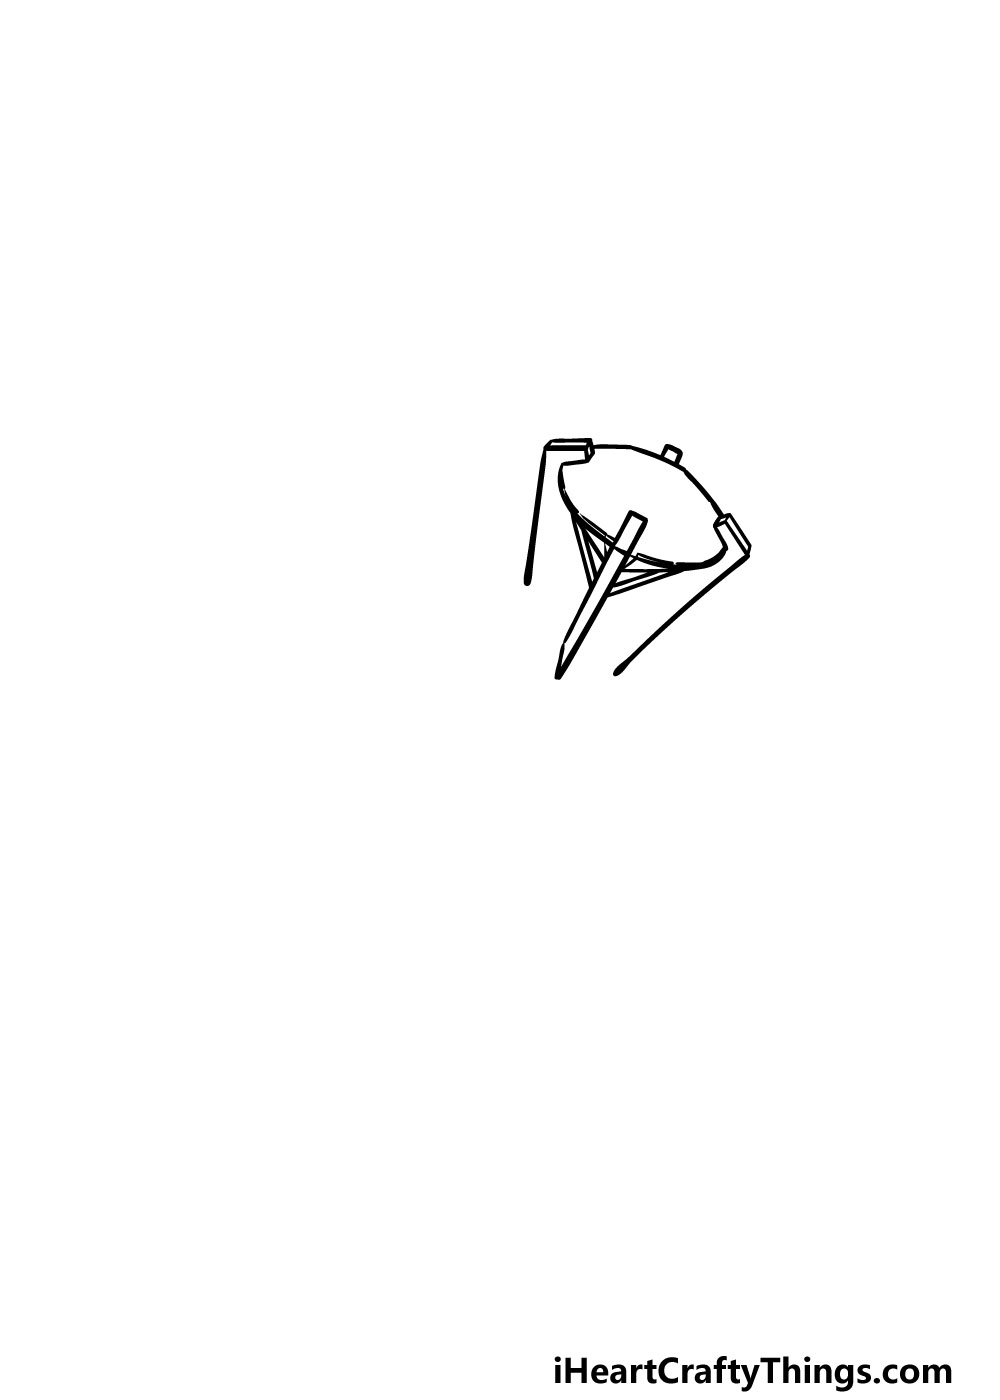 drawing a ring step 1